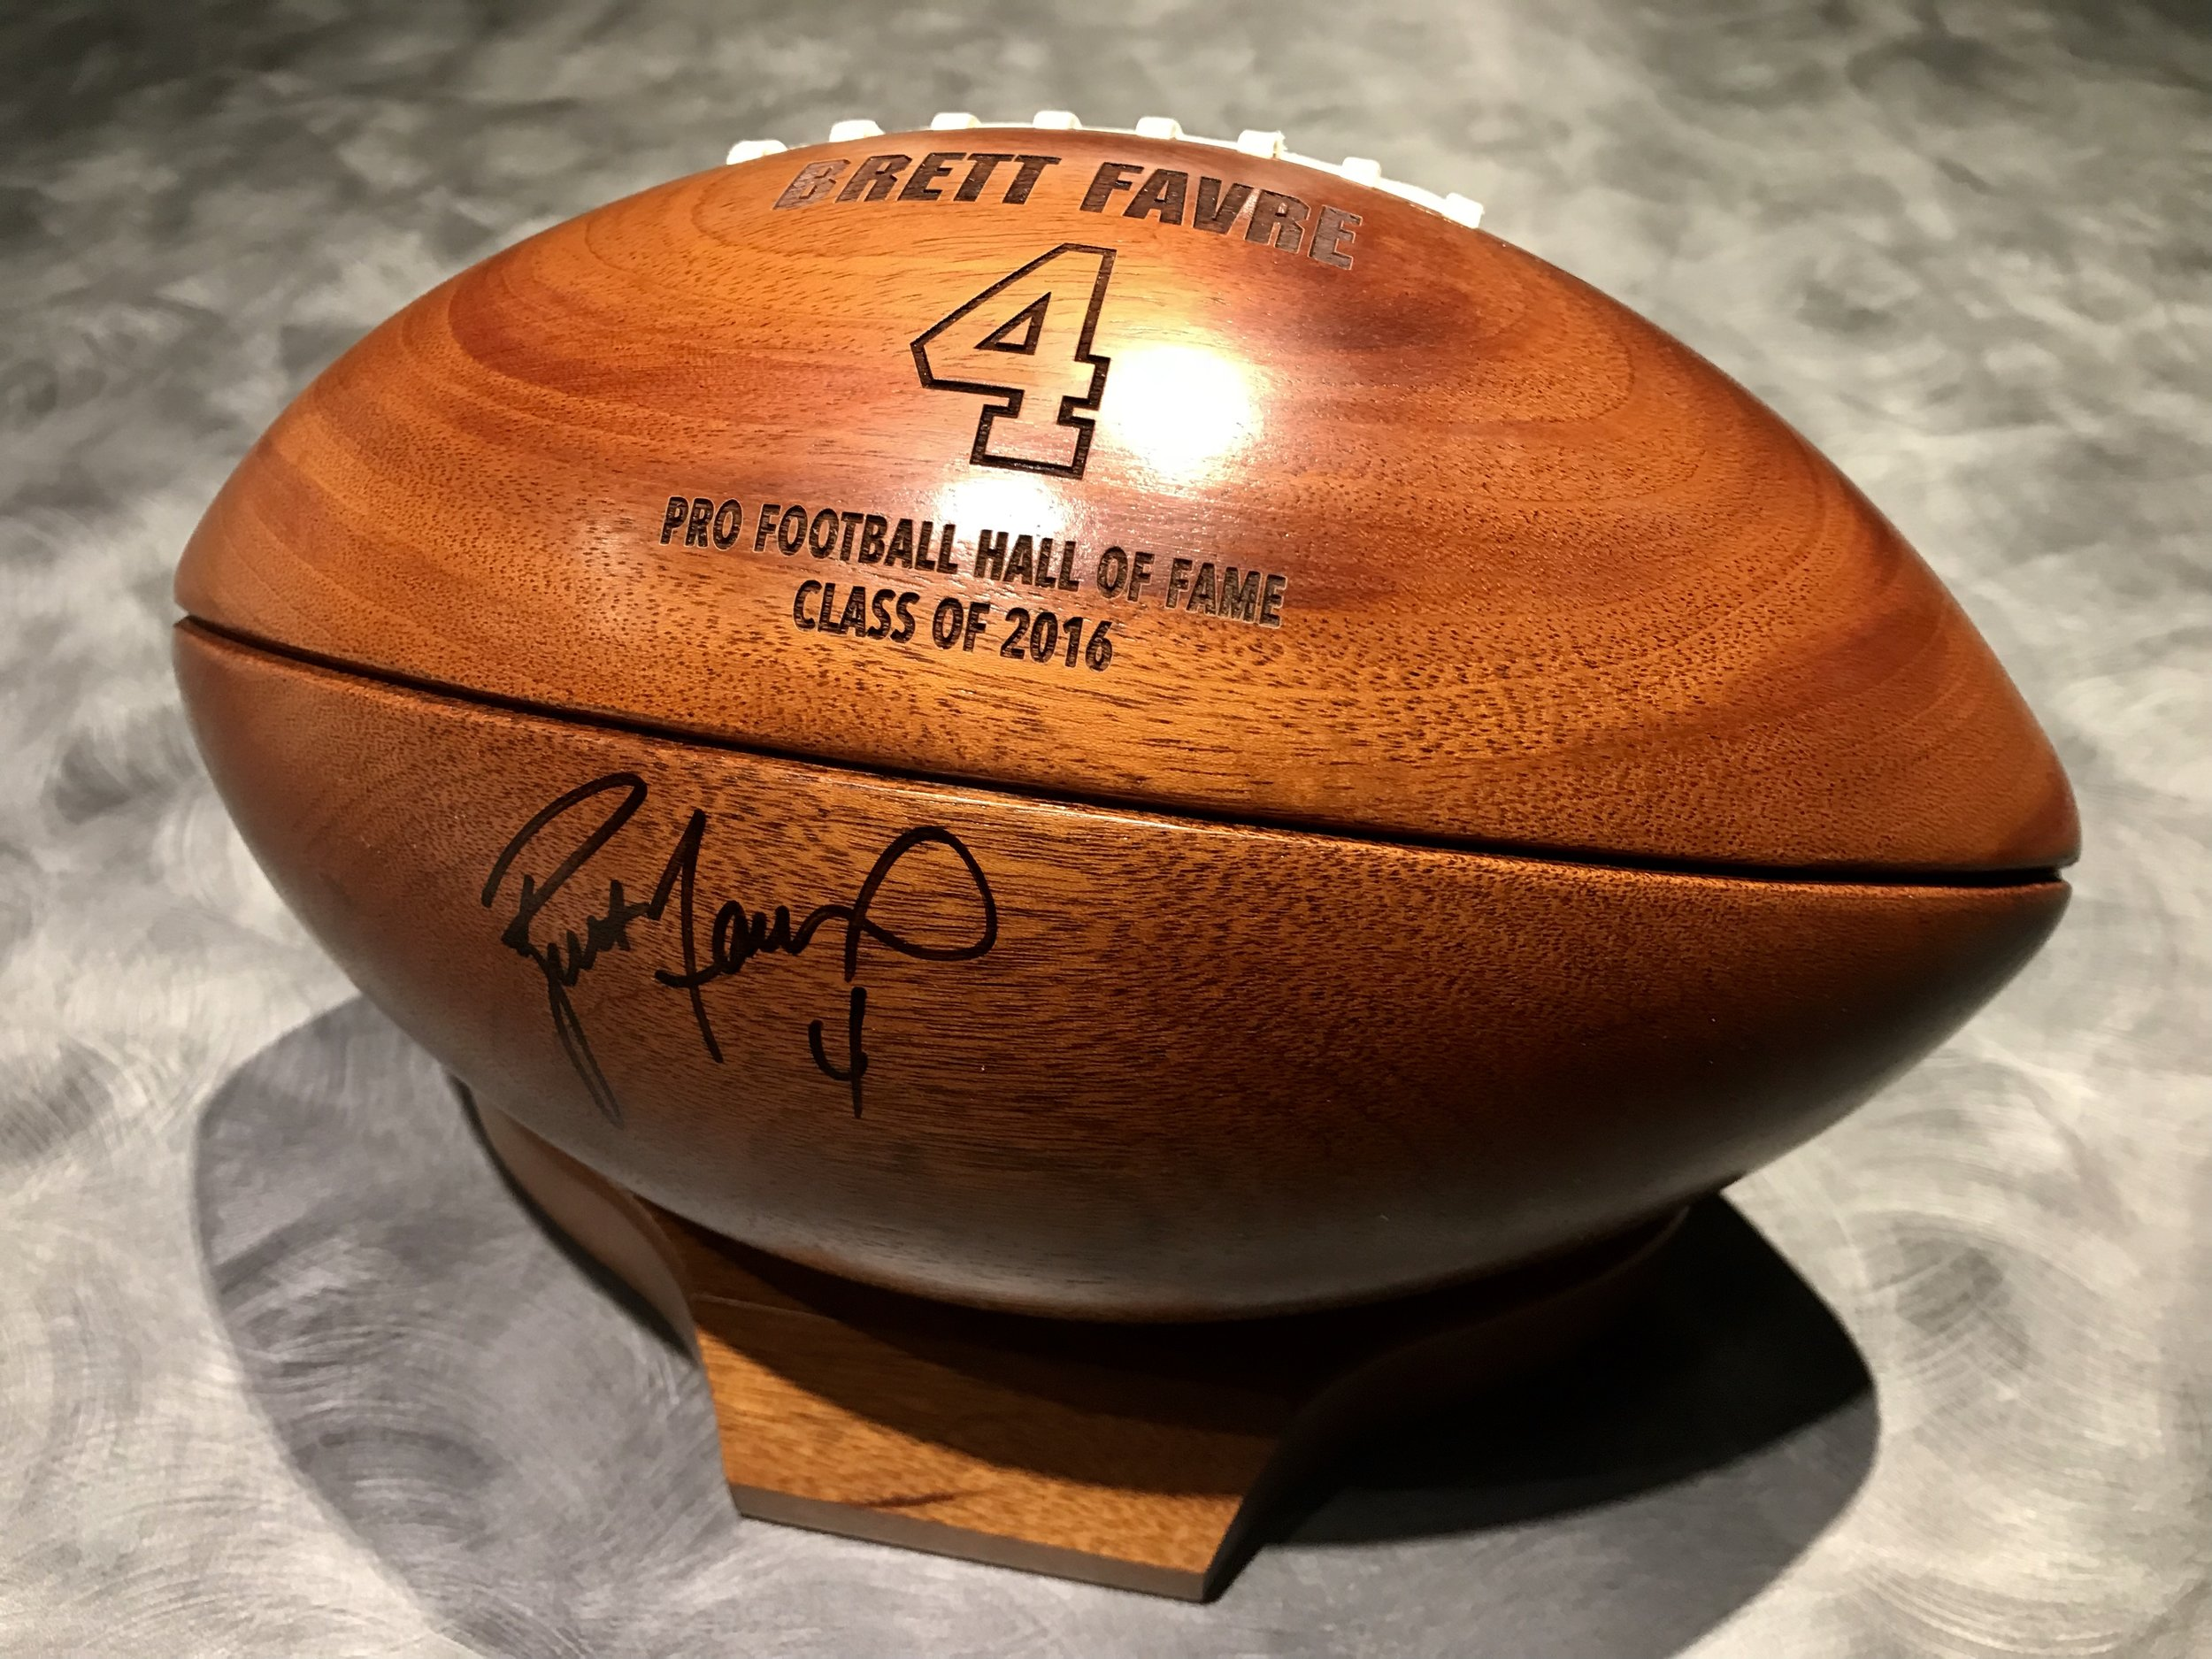 Unique wooden football signed by Brett Favre